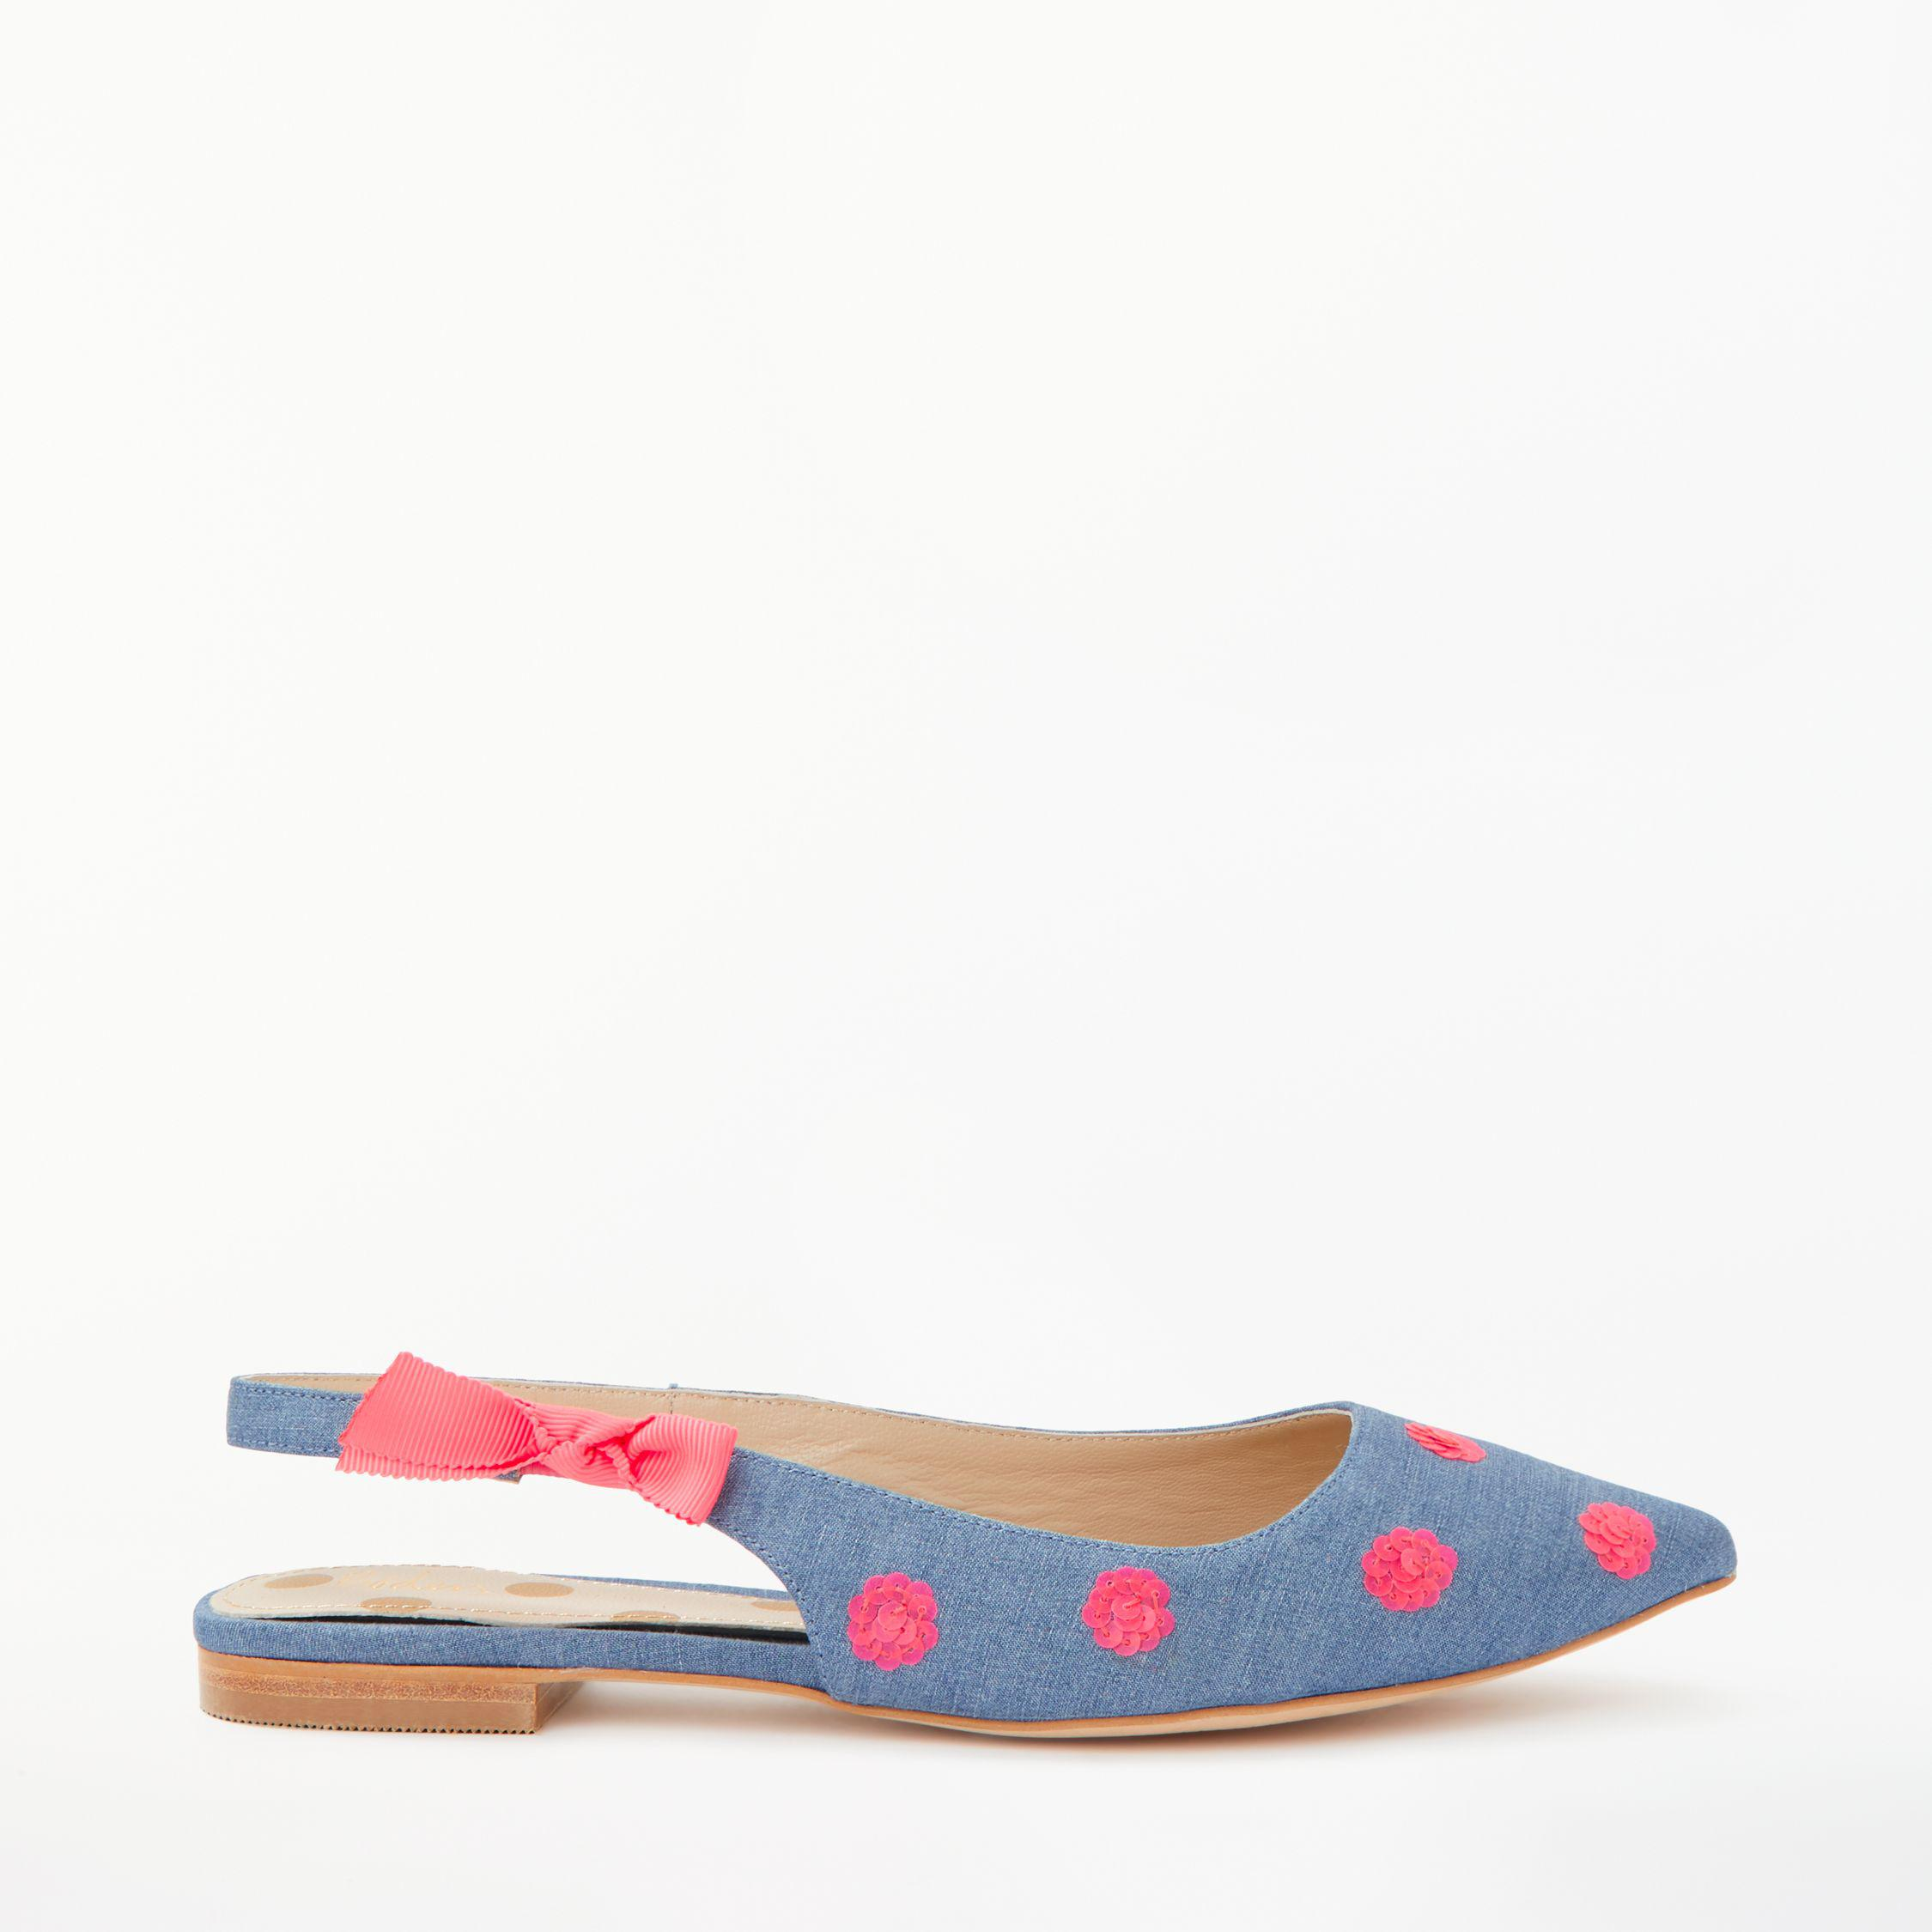 a091d4fb8a4 Boden Hilary Slingback Pumps in Blue - Lyst